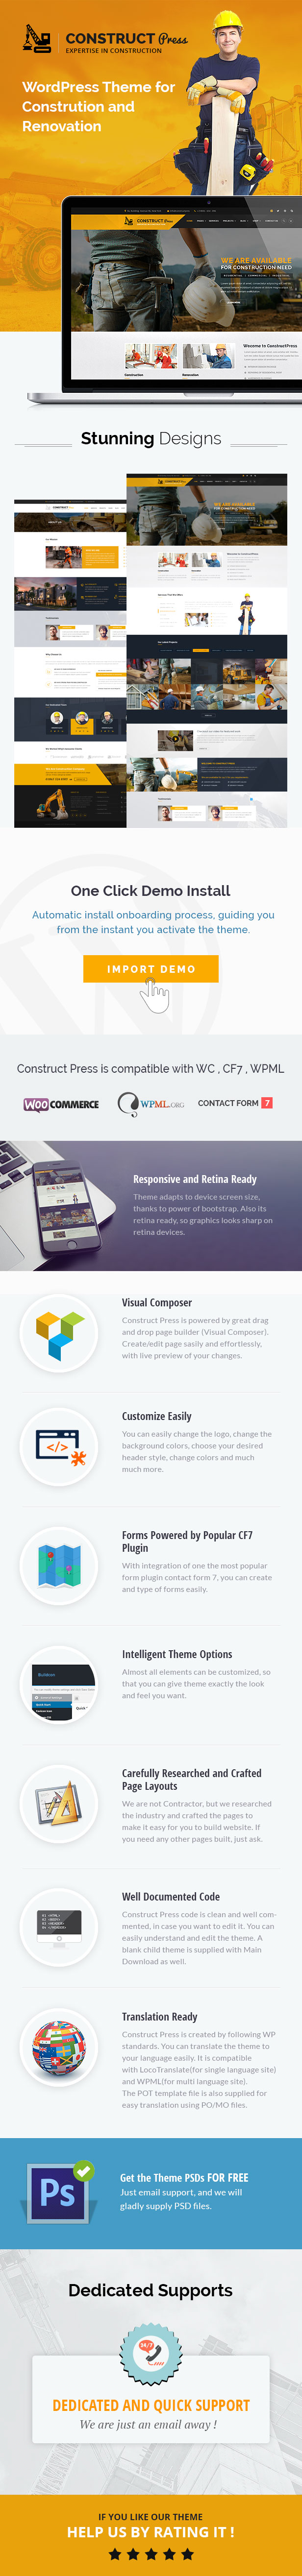 Construct Press - Construction and Renovation WordPress Theme - 1